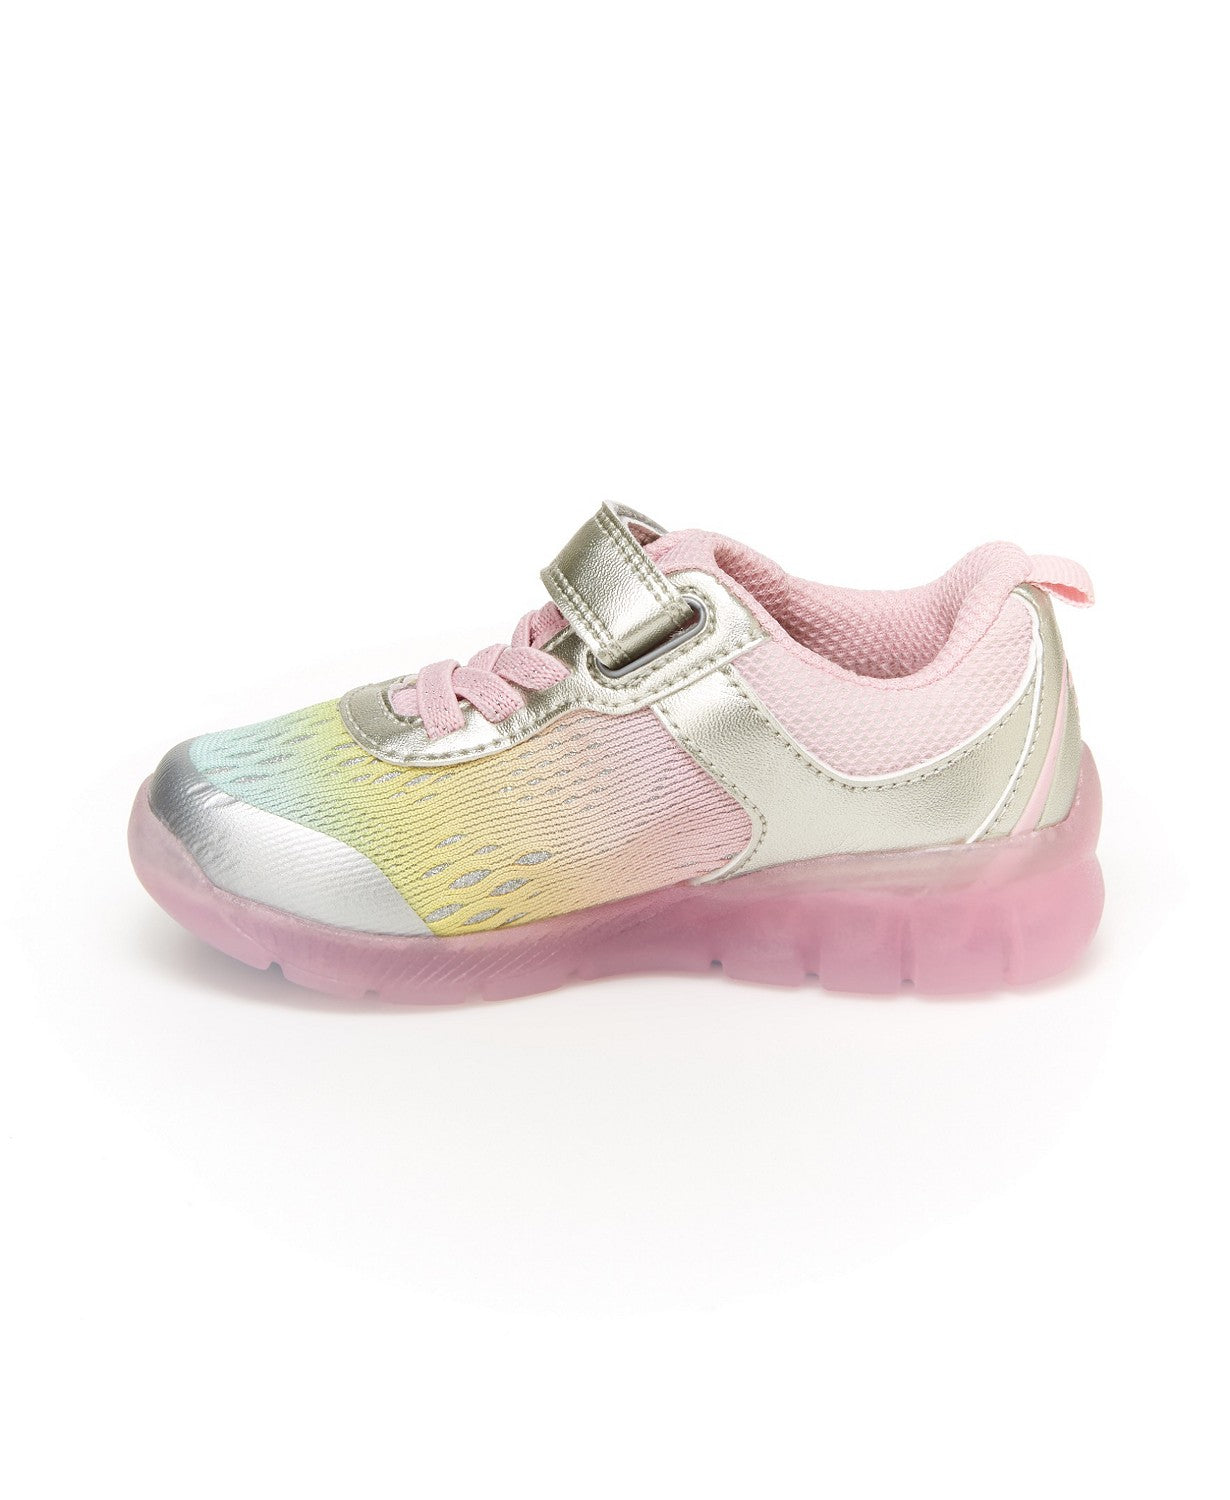 Made2Play Lighted Neo Sneaker - Rainbow